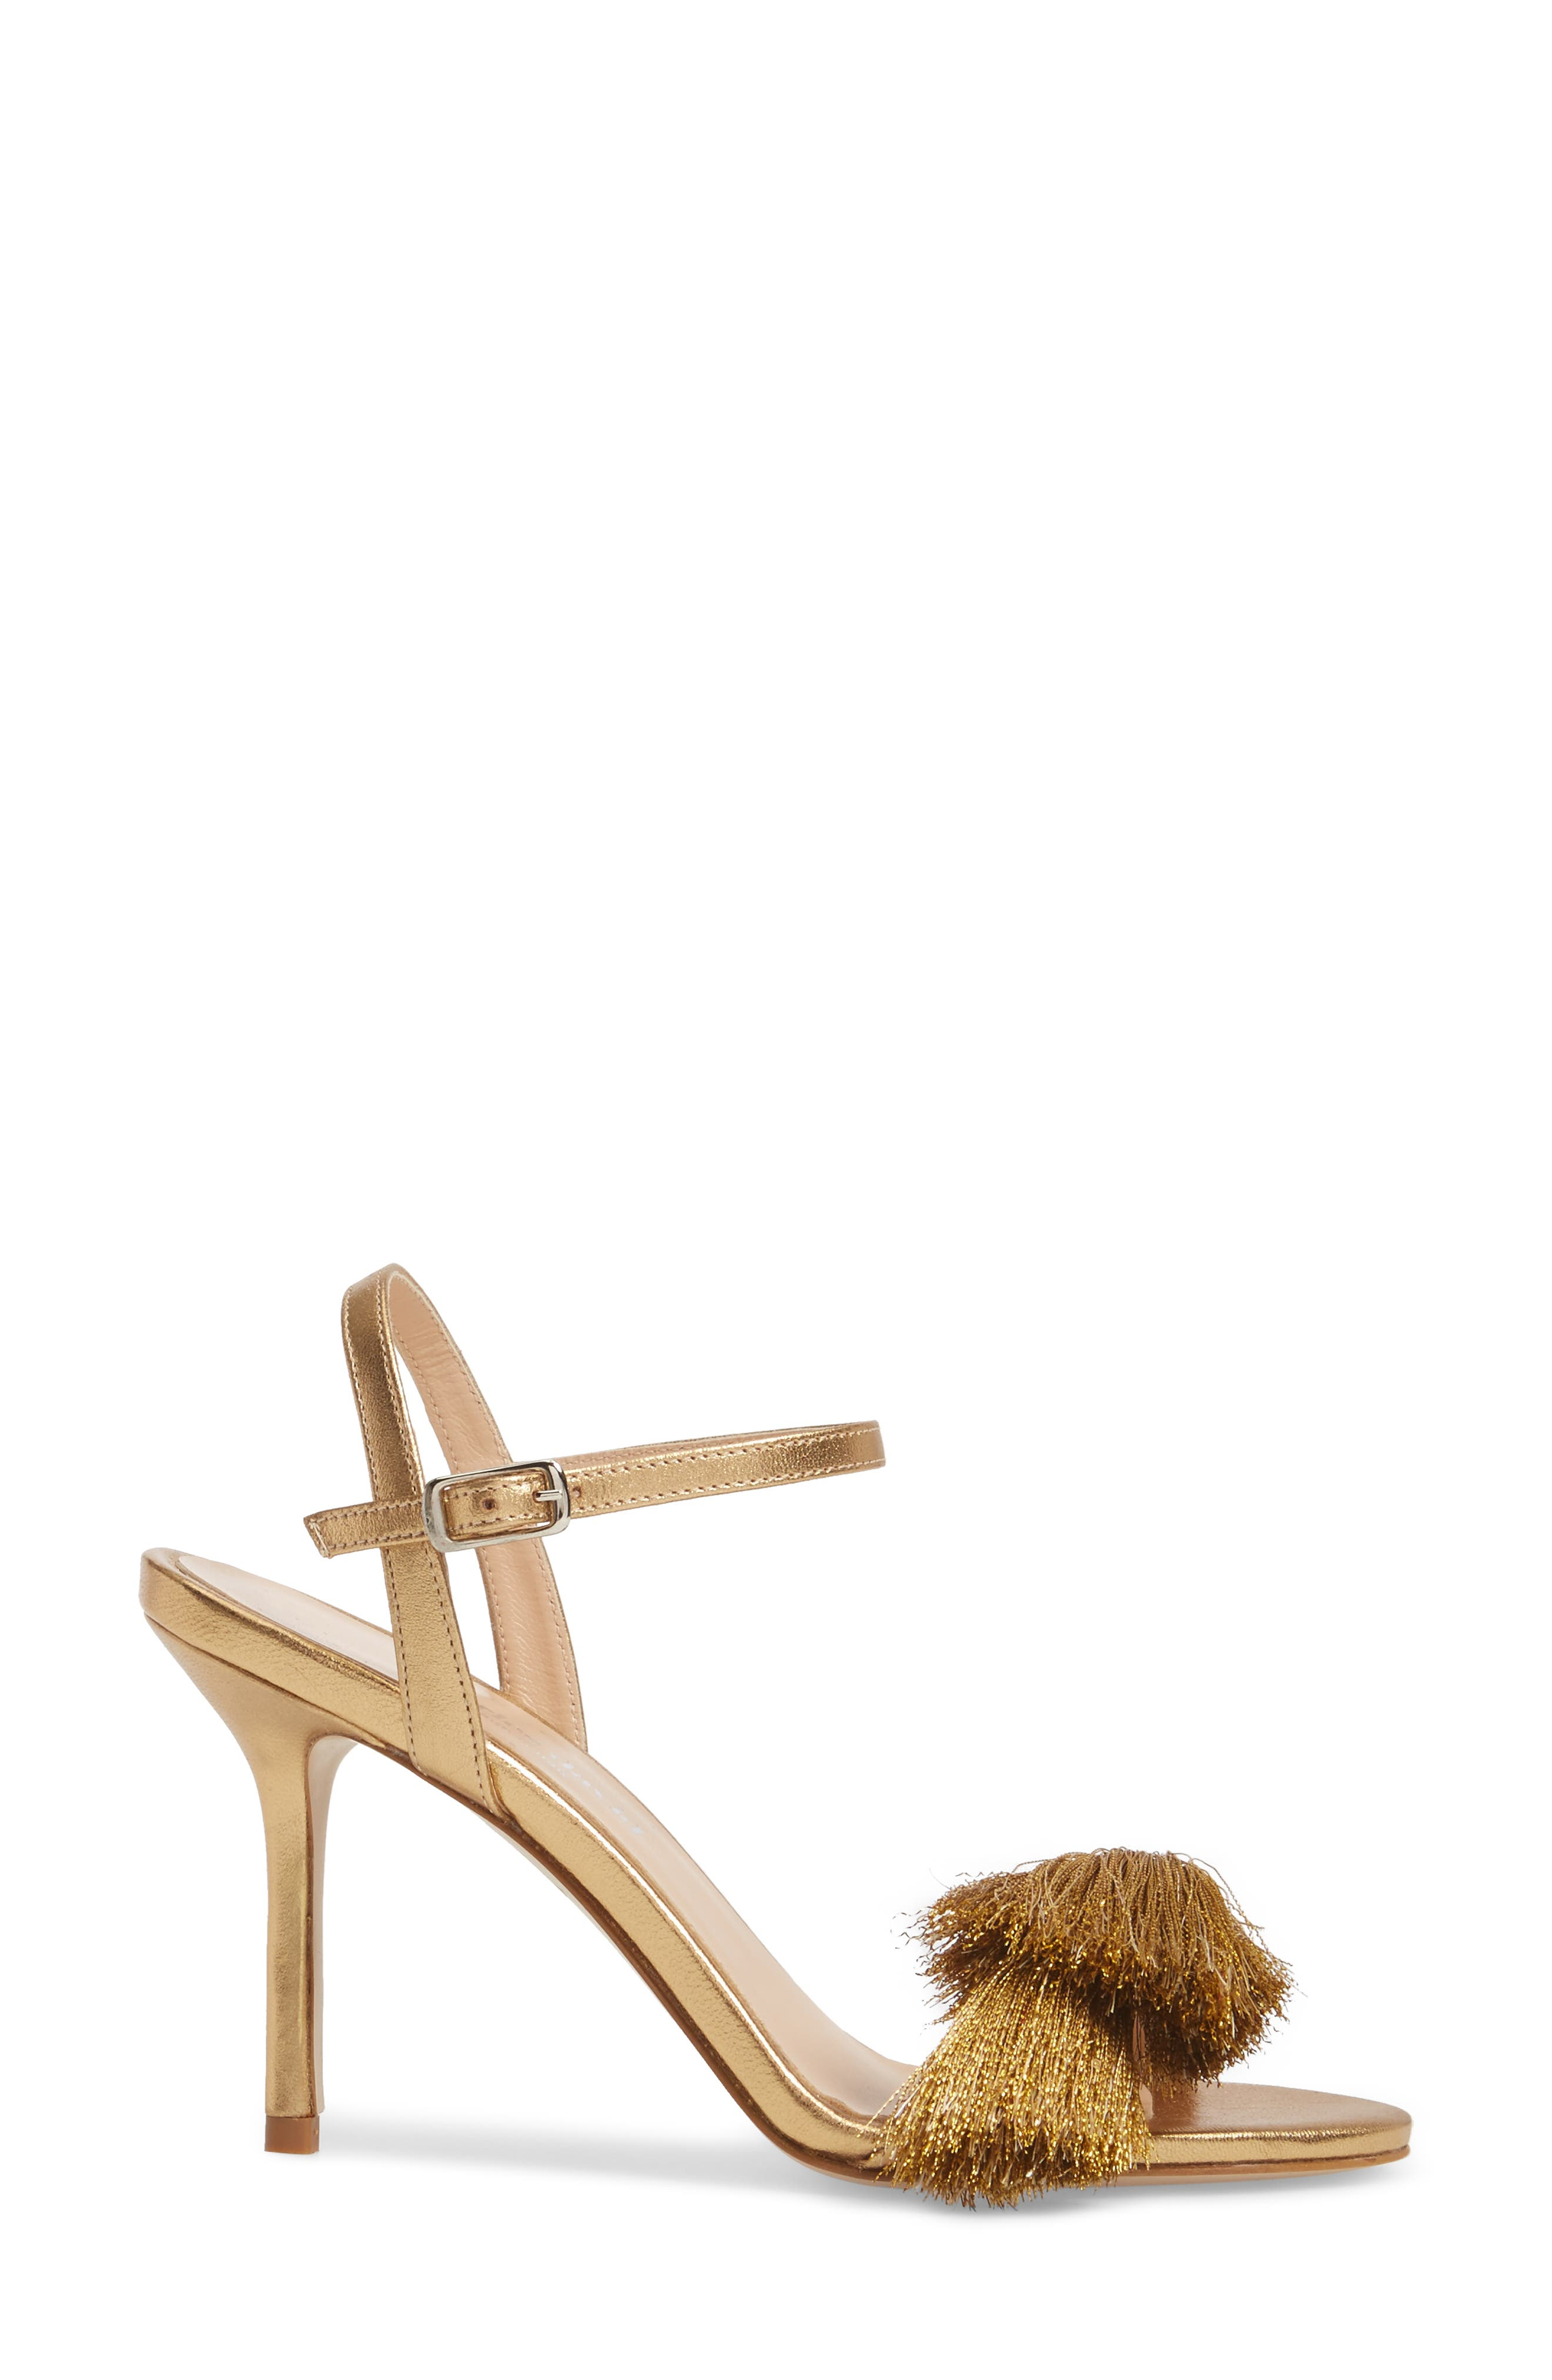 Sassy Tassel Sandal,                             Alternate thumbnail 3, color,                             GOLD LEATHER